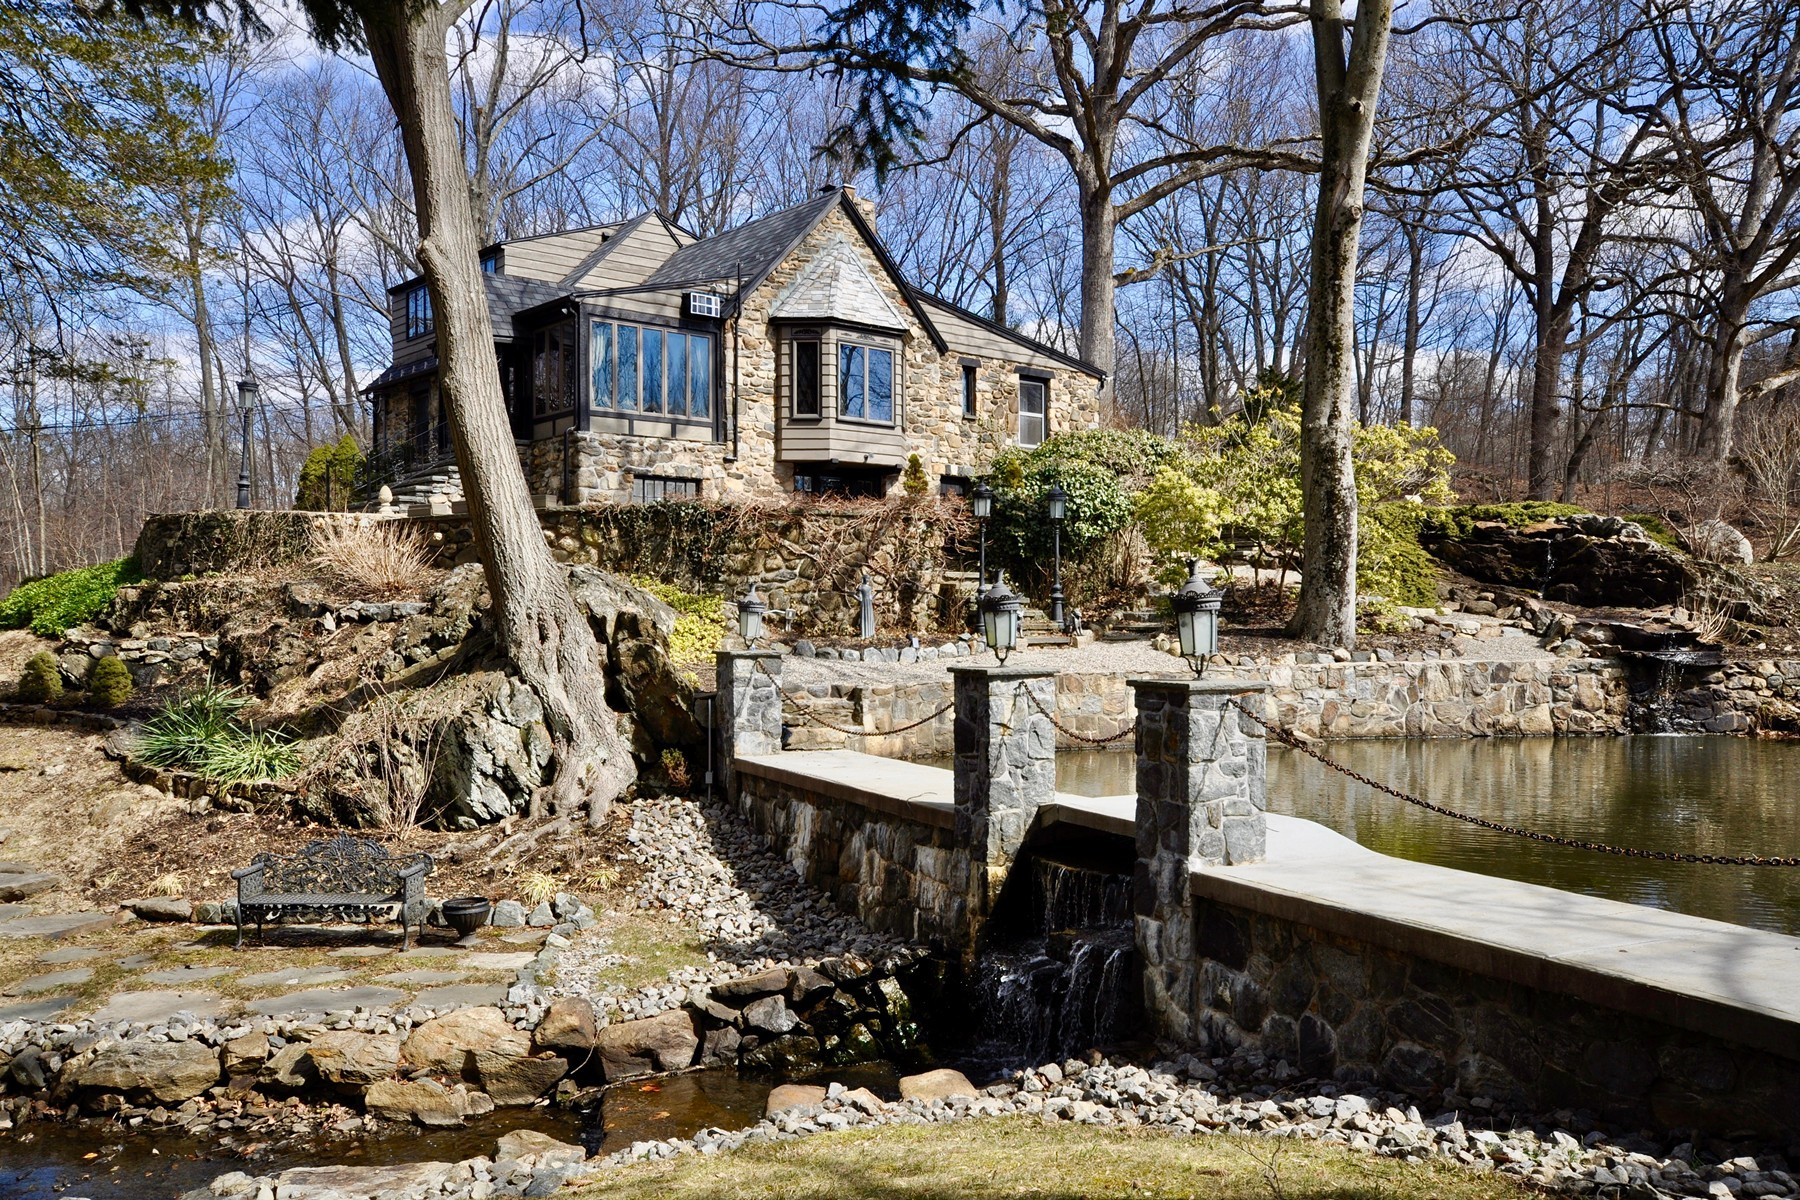 Single Family Homes for Sale at Romantic Stone Hideaway 64 Twin Ridges Road Ossining, New York 10562 United States